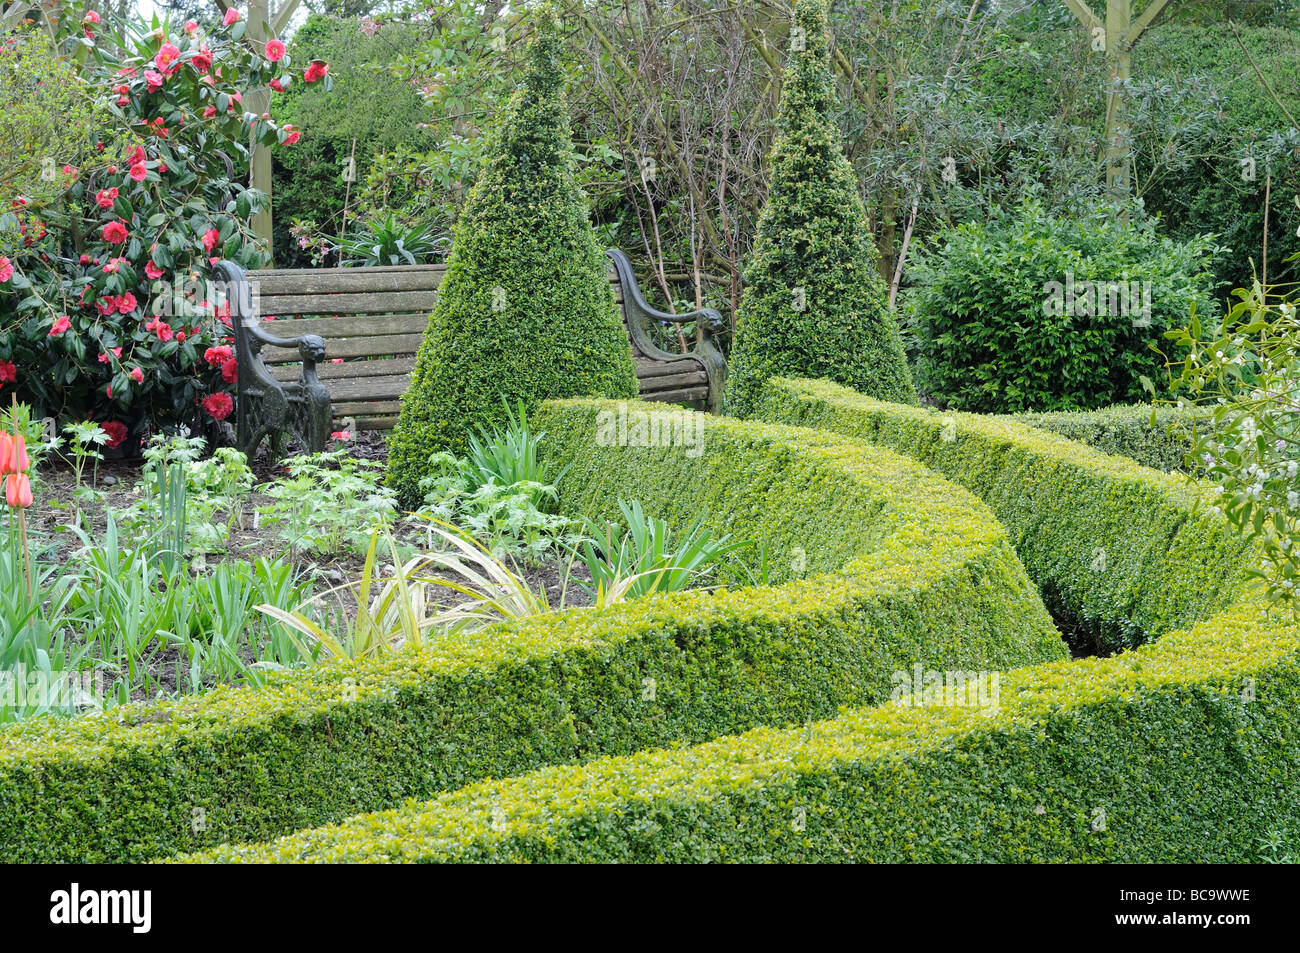 Path leading to garden seat path edged with trimmed box hedging in a springtime garden UK April - Stock Image